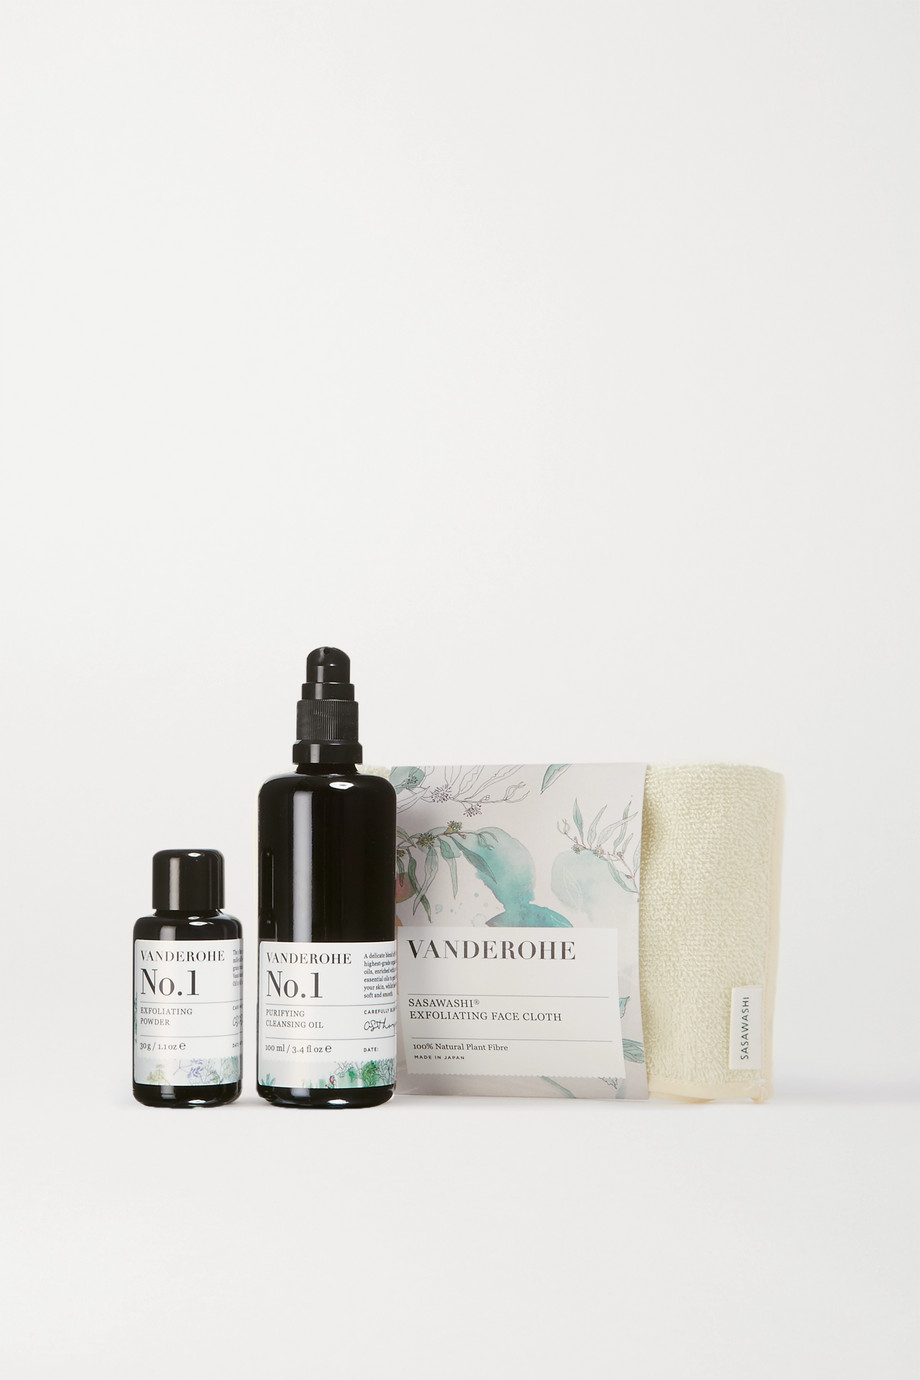 Vanderohe No.1 Purifying Cleansing Kit